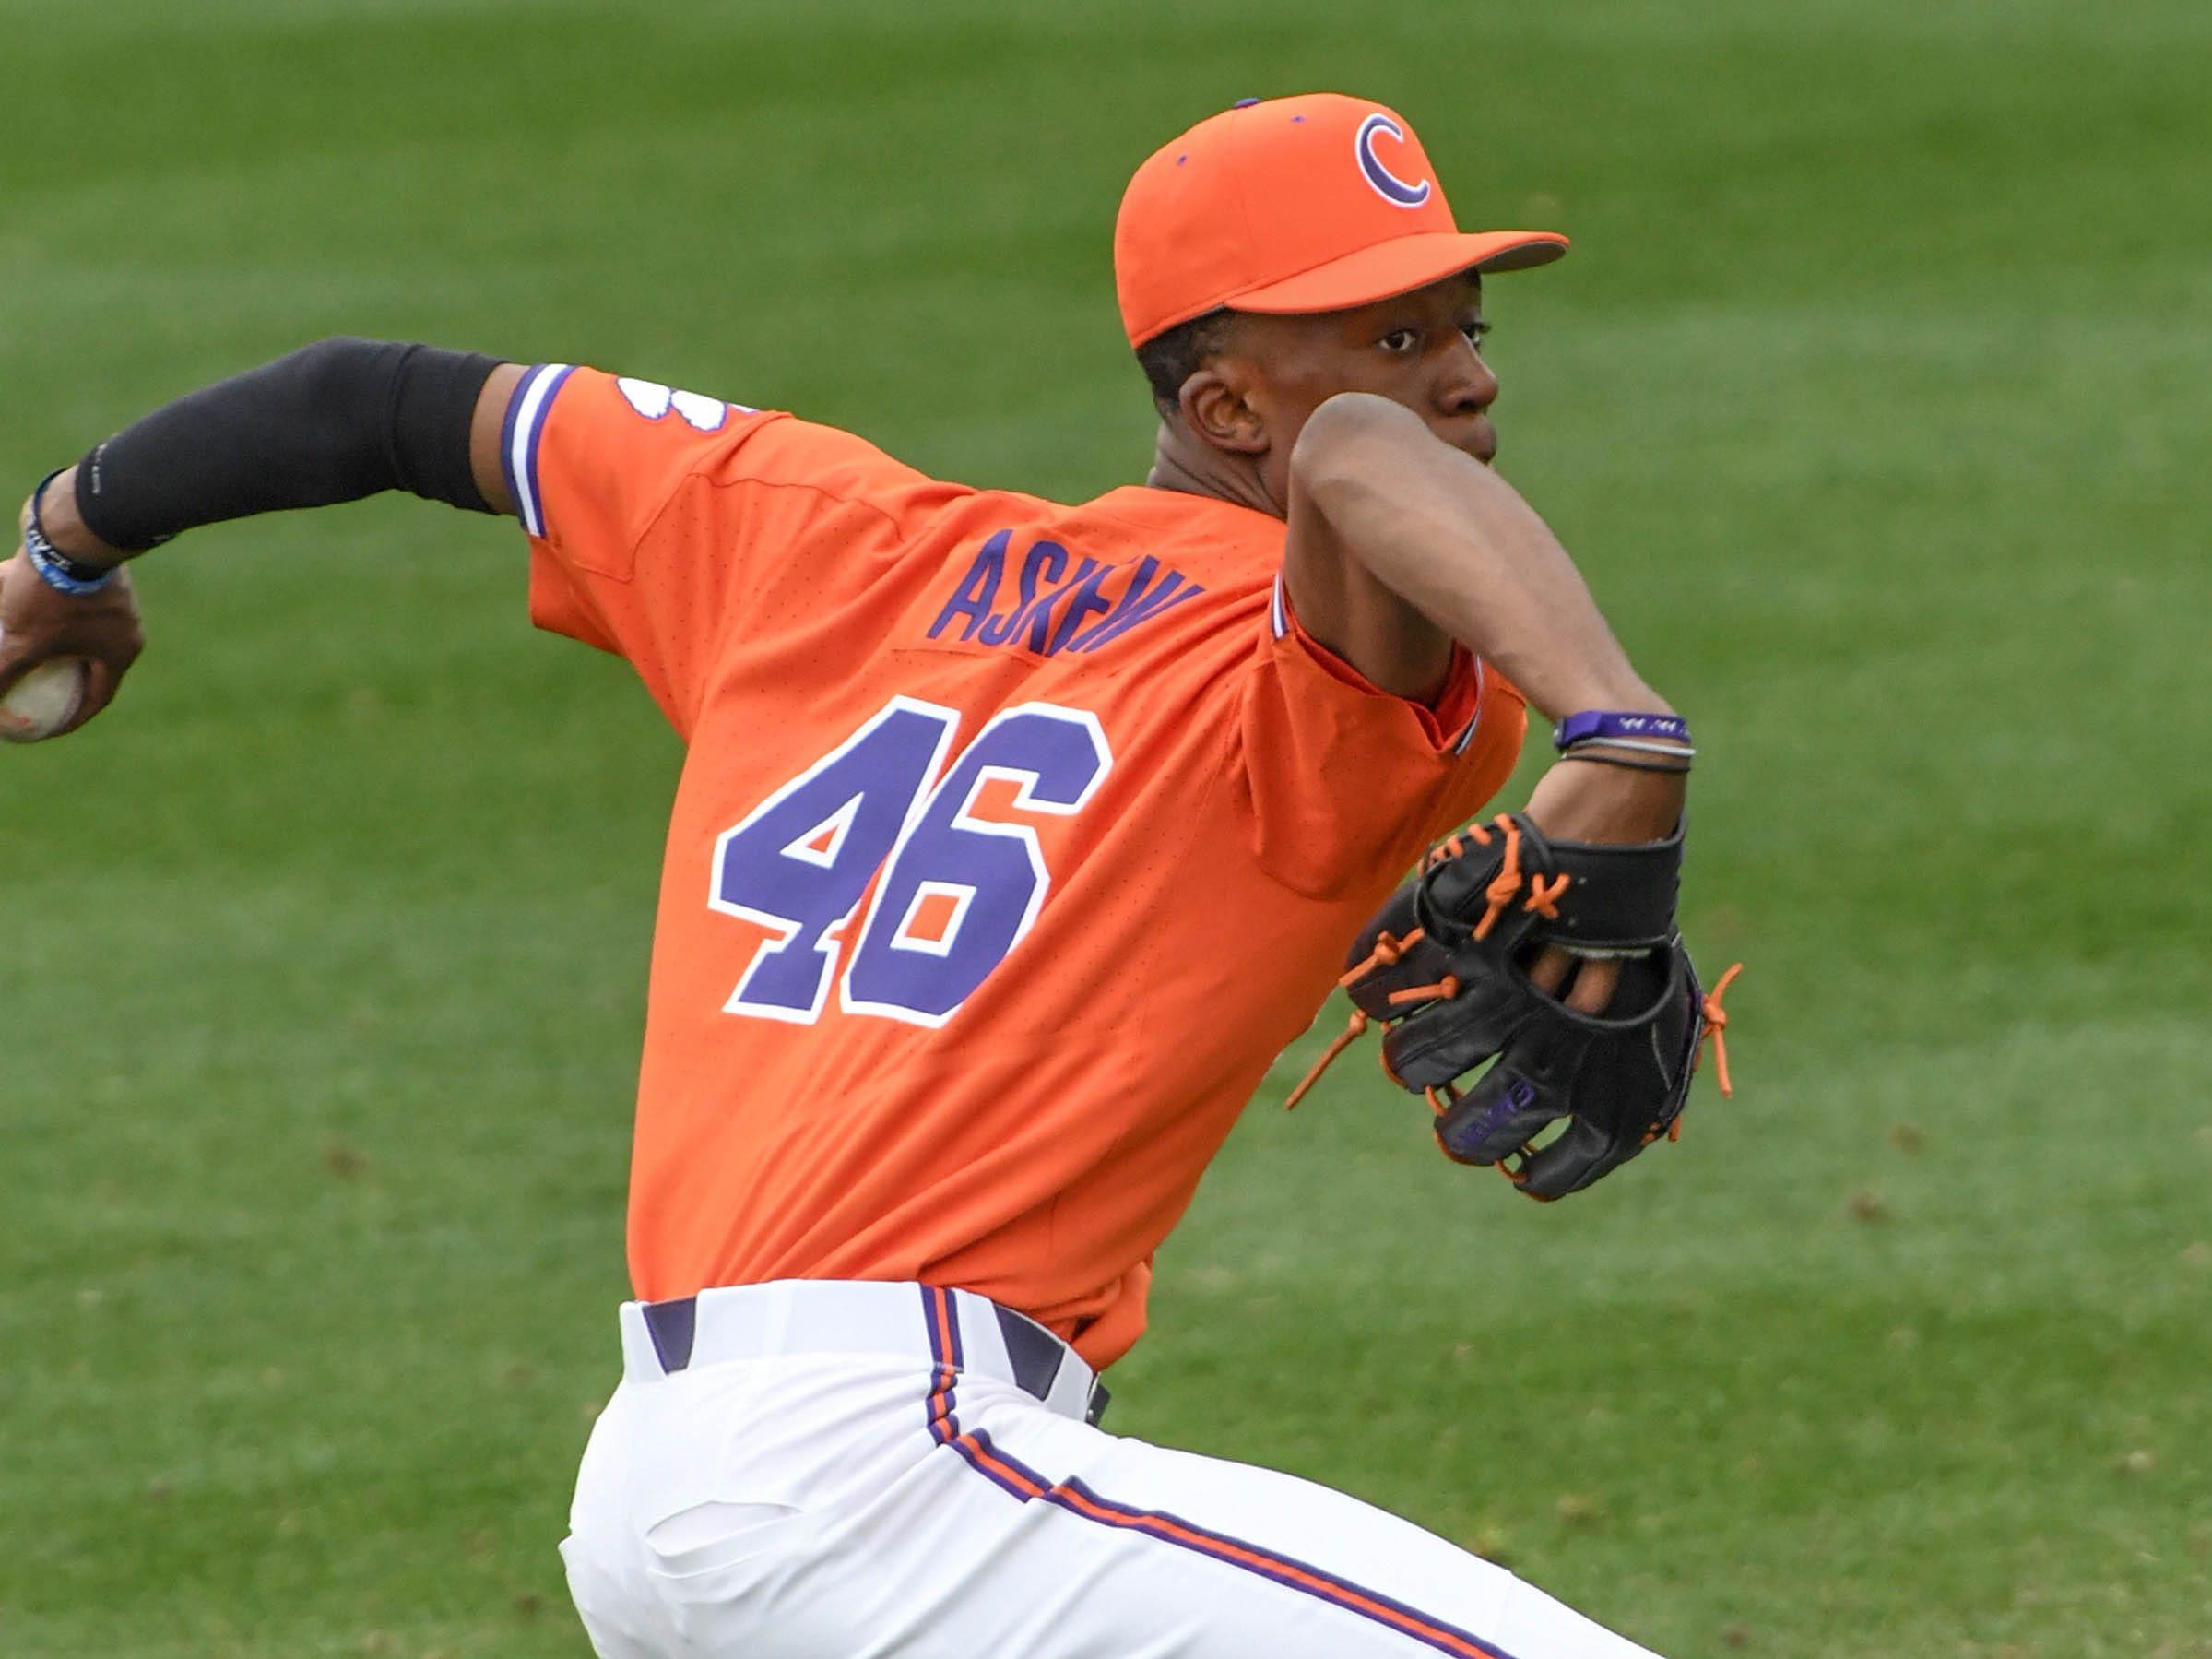 Clemson freshman Keyshawn Askew warms up before the game with South Alabama at Doug Kingsmore Stadium in Clemson Friday, February 15, 2019.